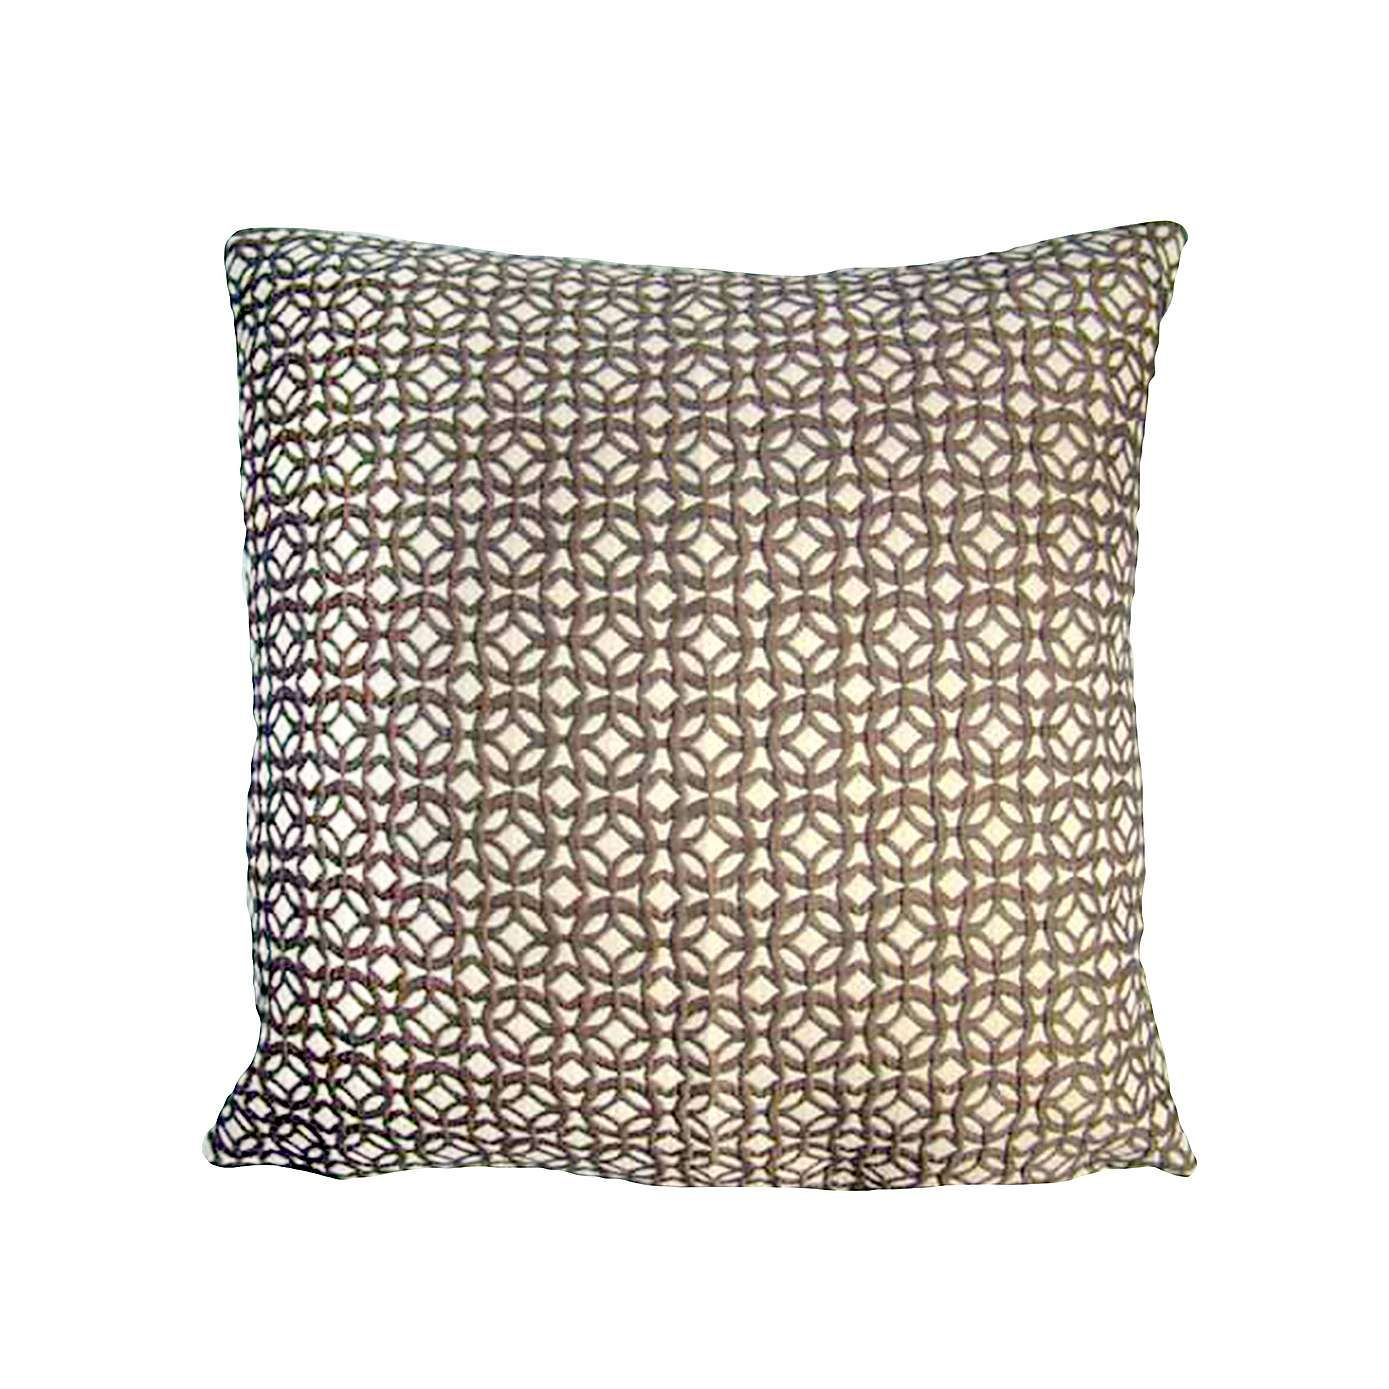 Agadir Cushion Cover Cushion cover, Bedroom cushions